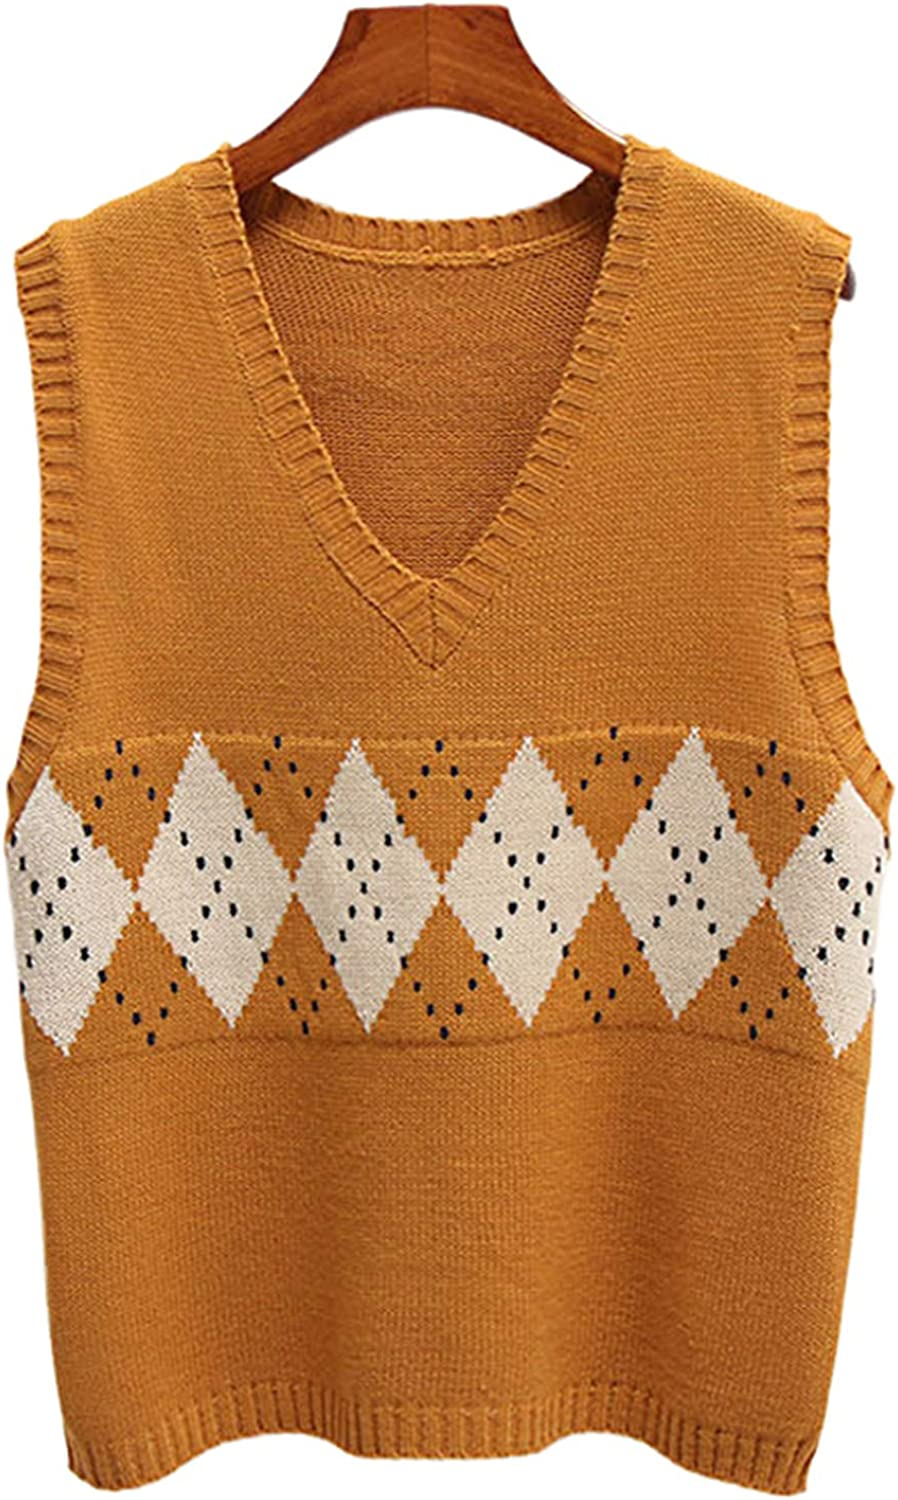 Sweater Vest Women V-Neck Casual Vintage Pullover Knitted Sweater Korean Loose Sleeveless Tops